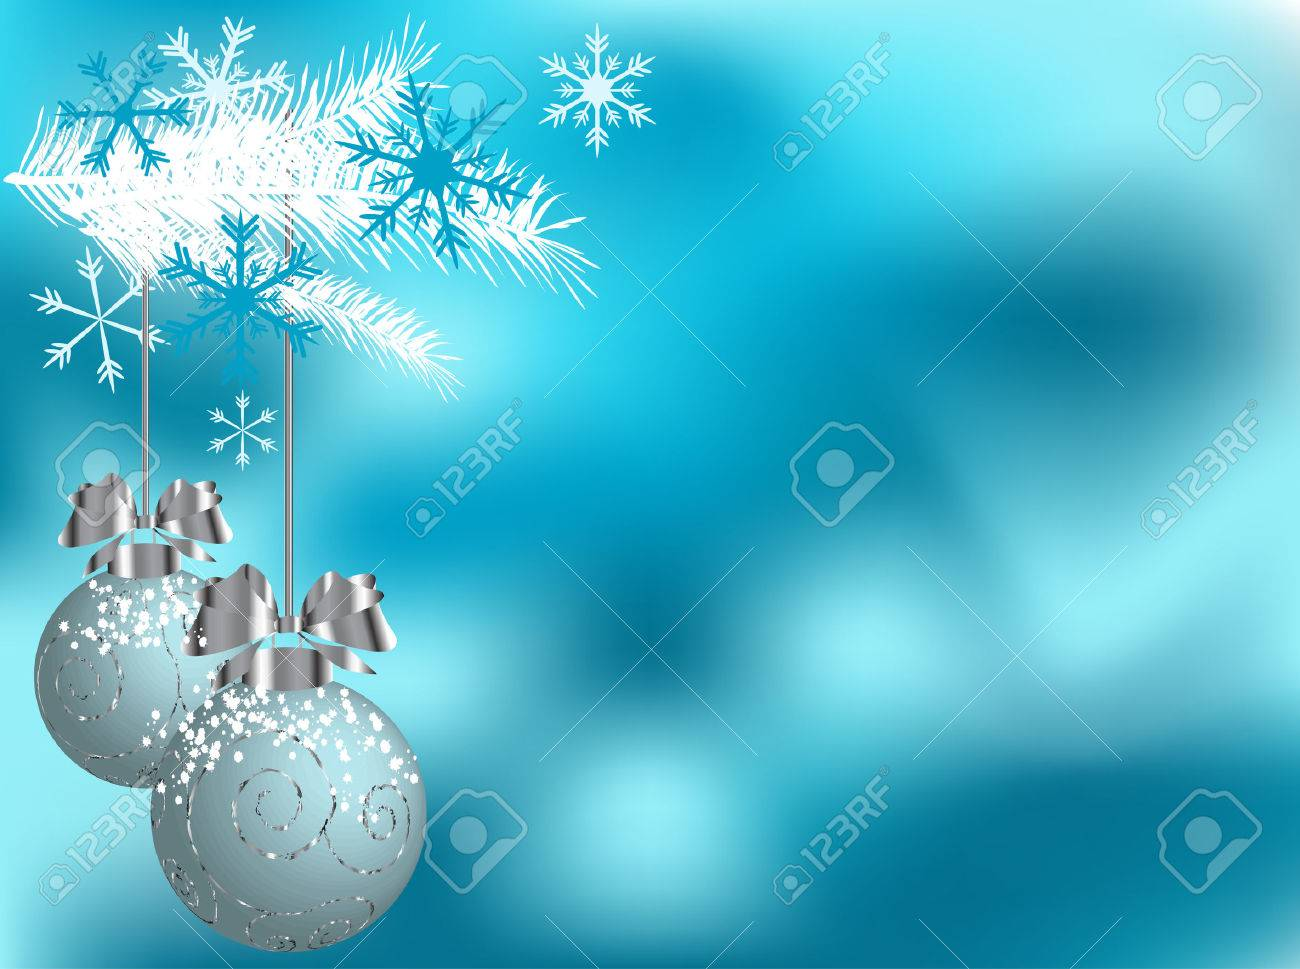 Christmas abstract background  with balls - vector illustration Stock Vector - 7801003